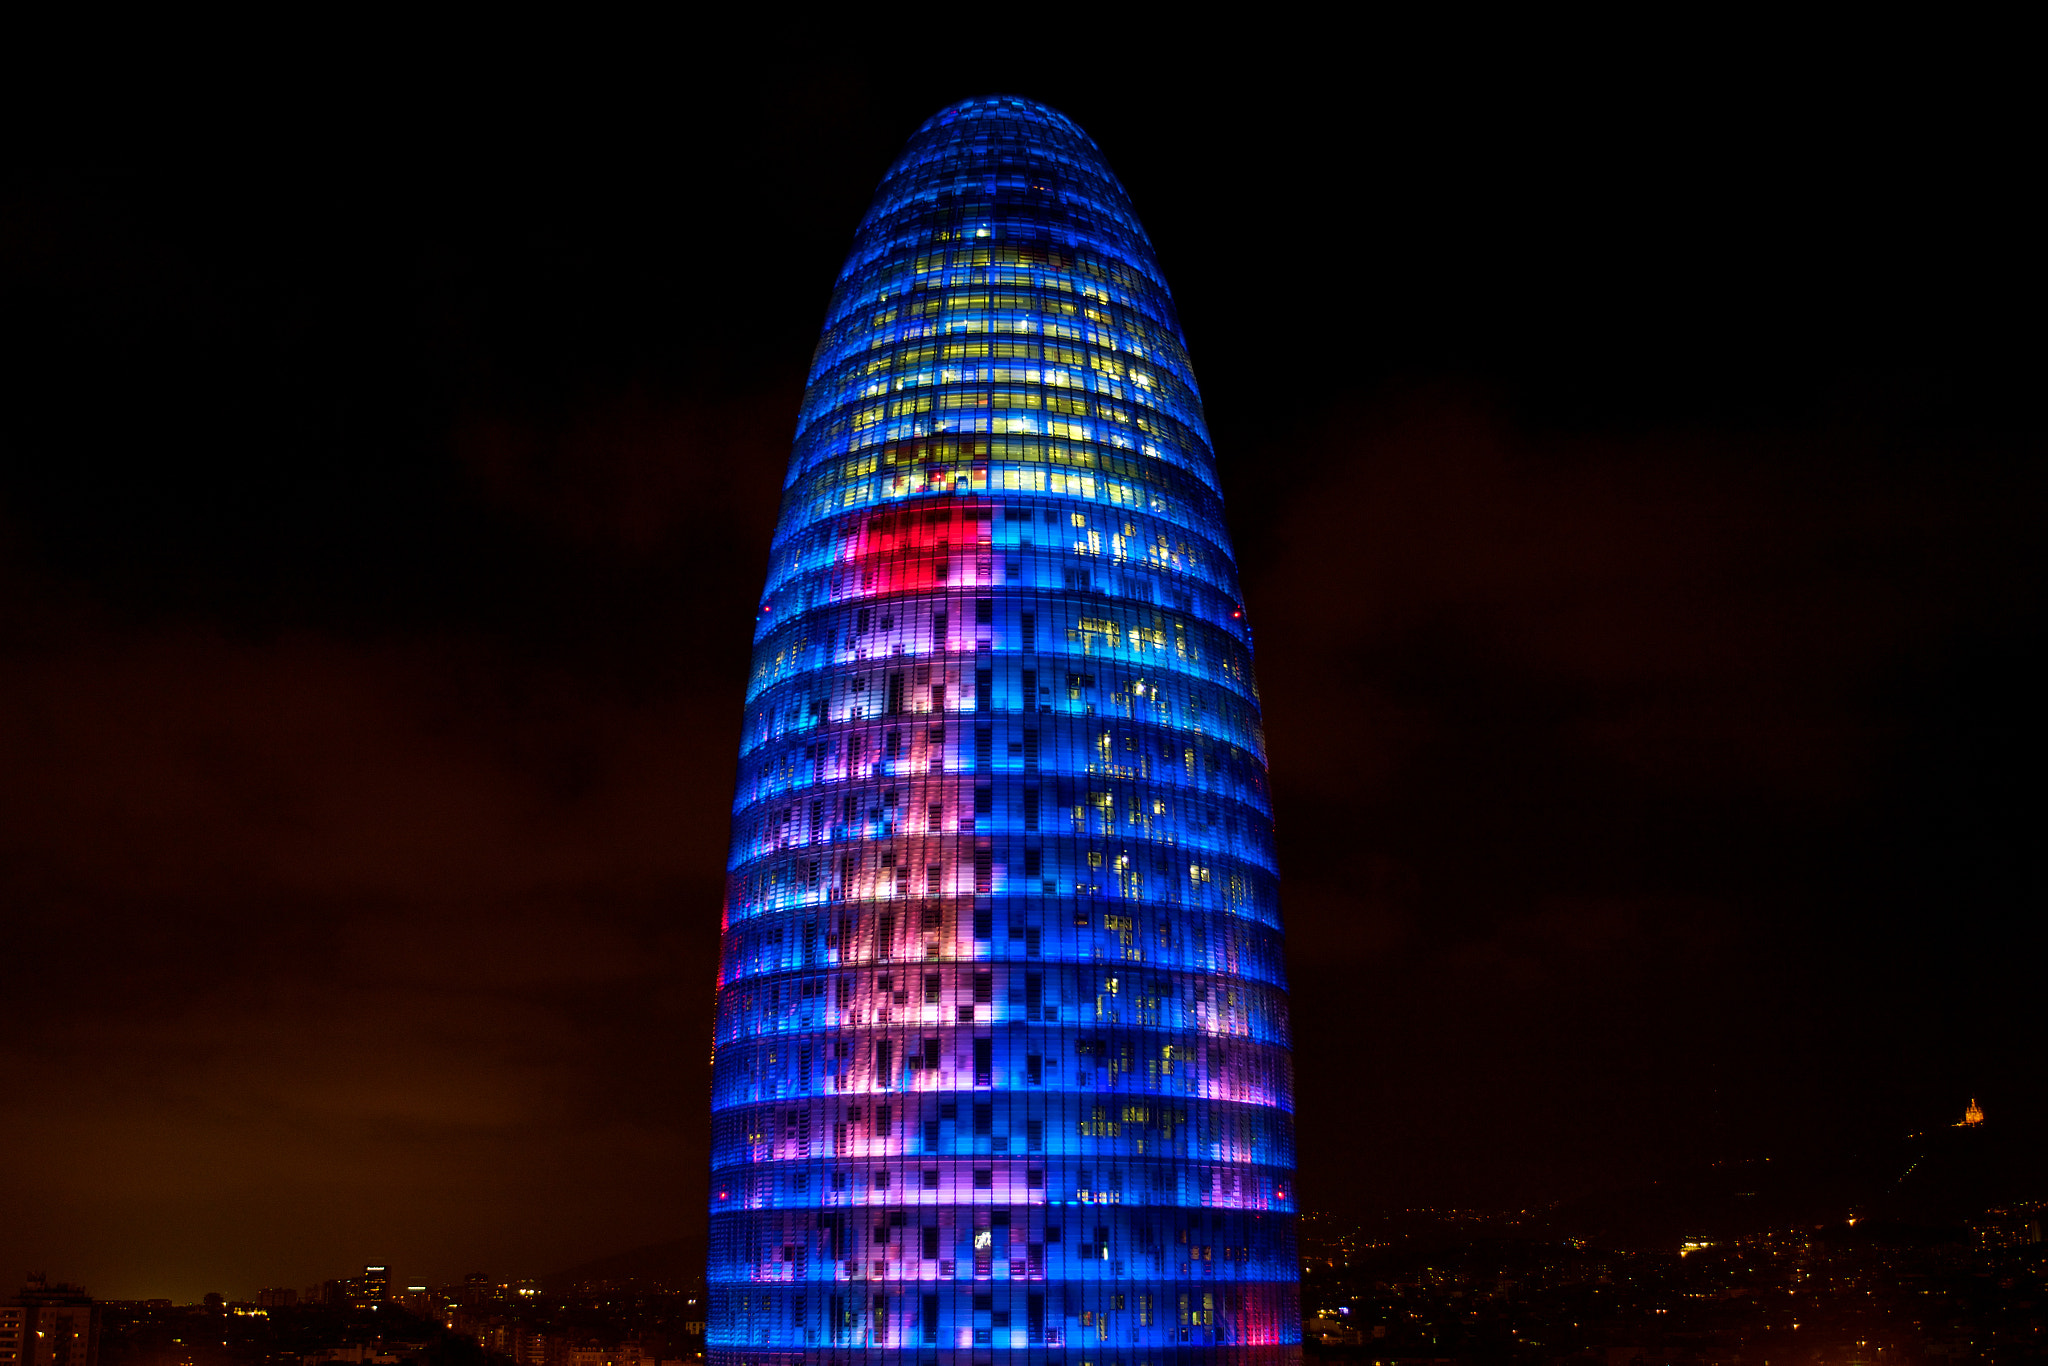 Photograph Torre Agbar by Guido Merkelbach on 500px